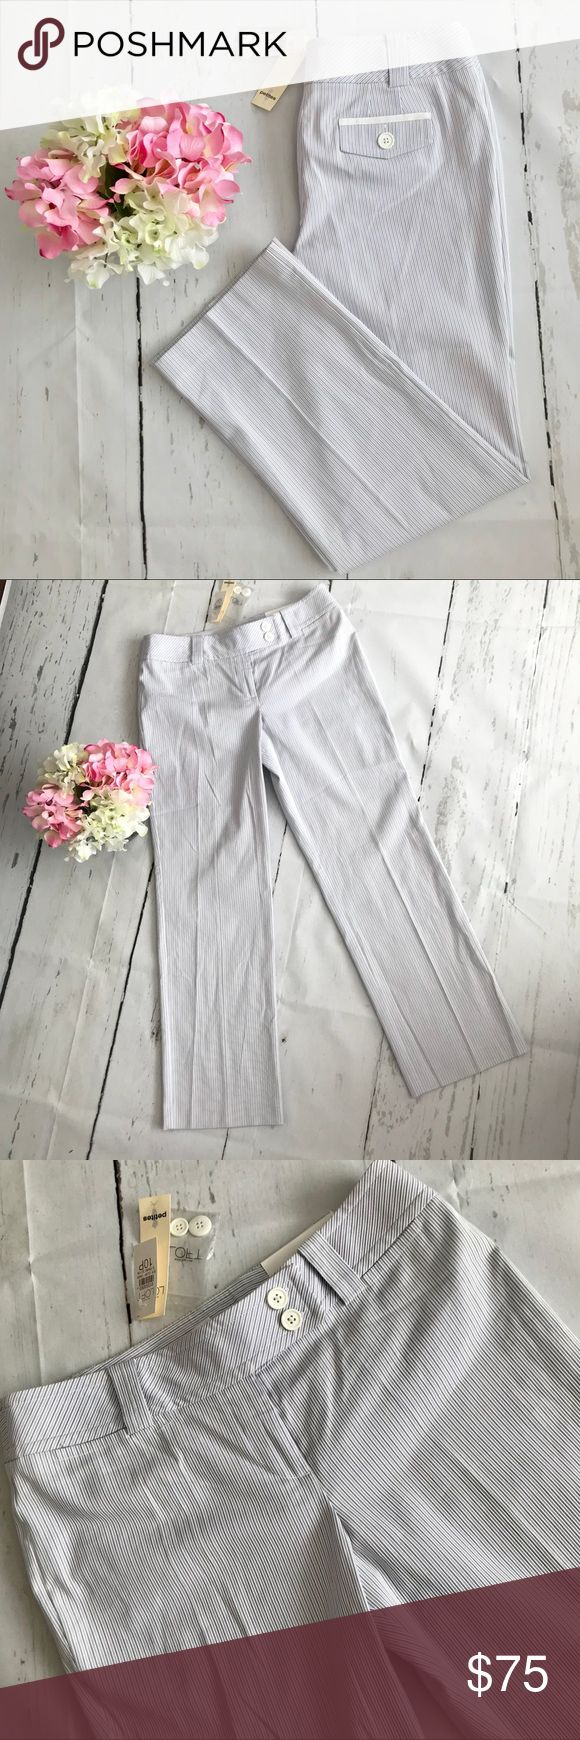 Ann Taylor Loft Striped Pants Petite Beautiful Ann Taylor Loft striped pants in colors white, gray and blue. •Size 10 Petite  •100% Cotton   🚫No Trades 🚫  📦 Fast Shipping 📦 💵 Open to Offers 💵  💕 Willing to Bundle 💕 ➵ Pet free home 🐶 ➵ Smoke free home 🚬 🌸Always Shipped the same or next day🌸 Ann Taylor Pants